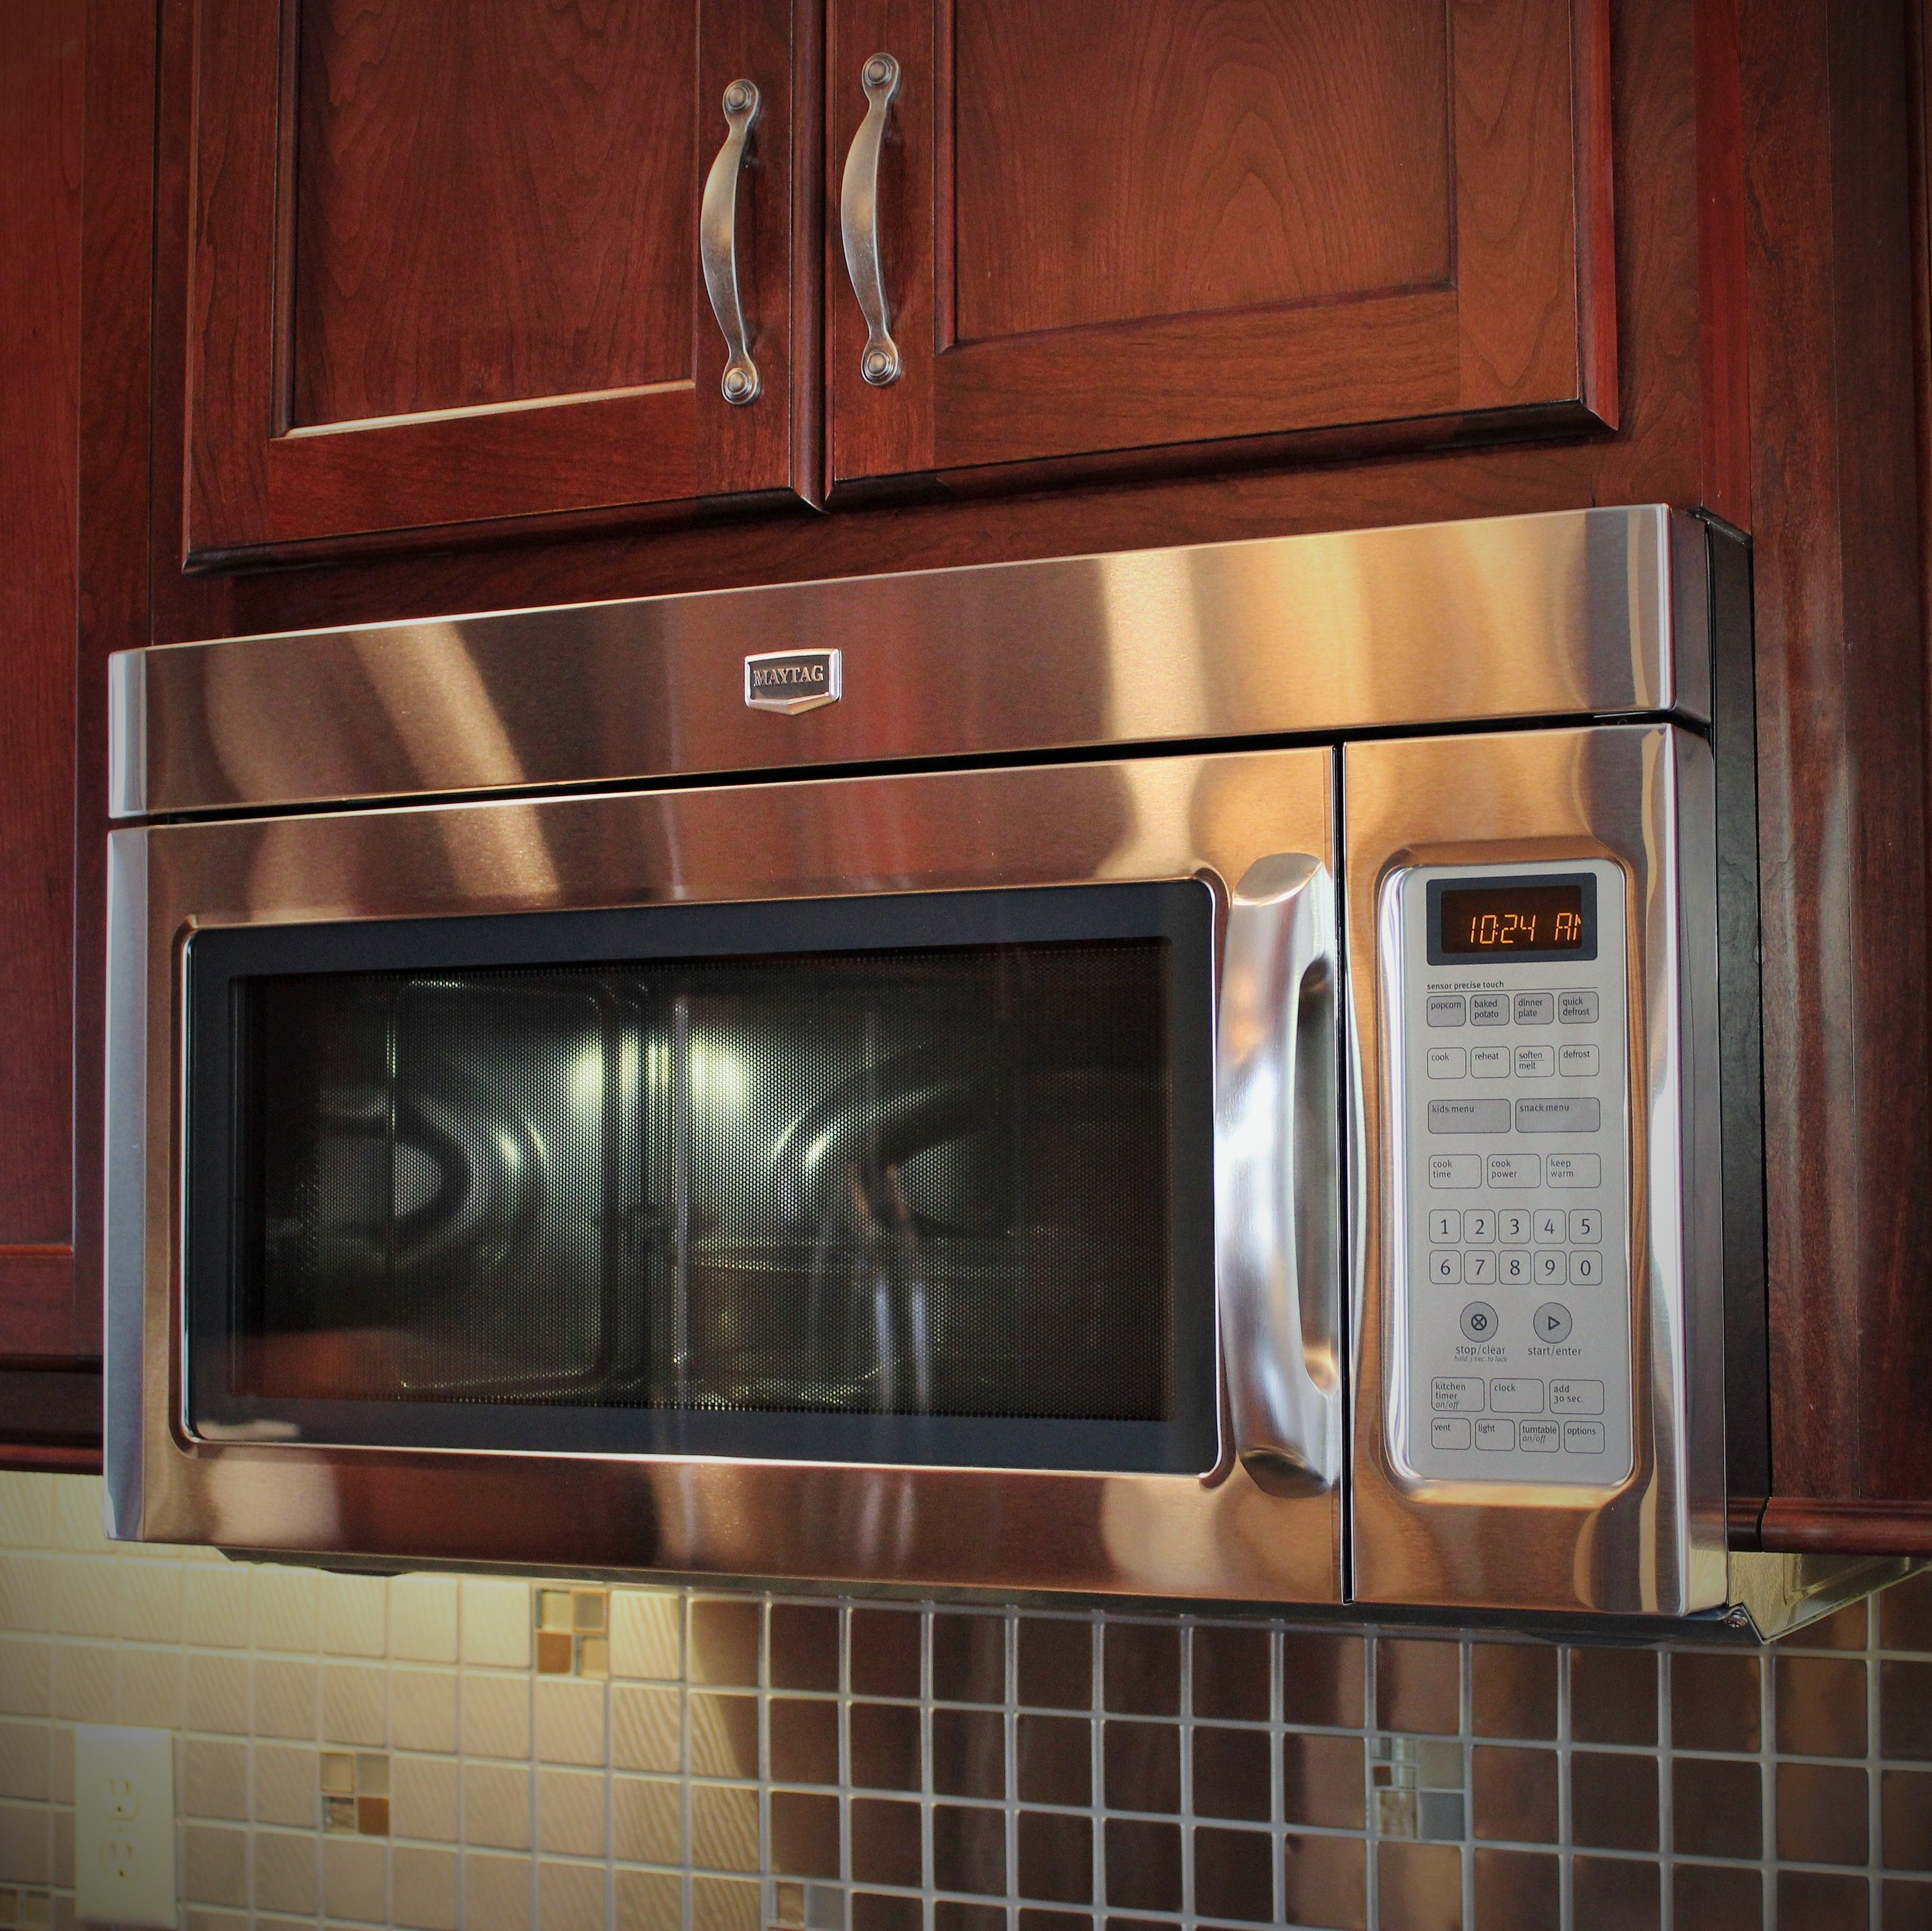 Stainless Over The Range Microwave Hood By Maytag This Looked